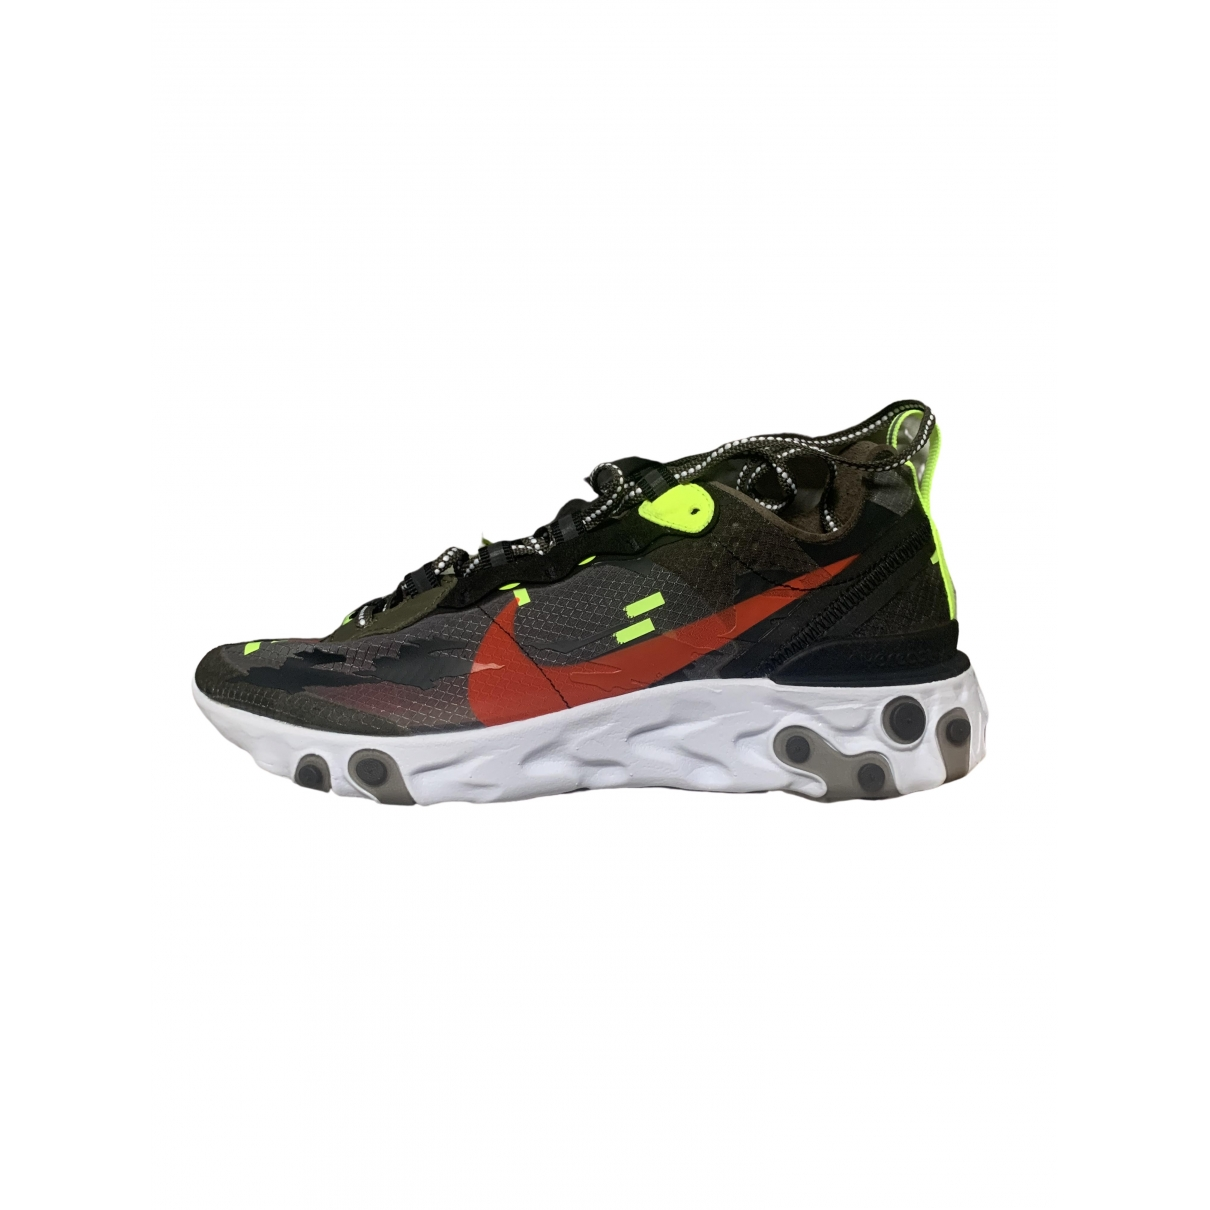 Nike React Element 87  Multicolour Cloth Trainers for Women 39 EU